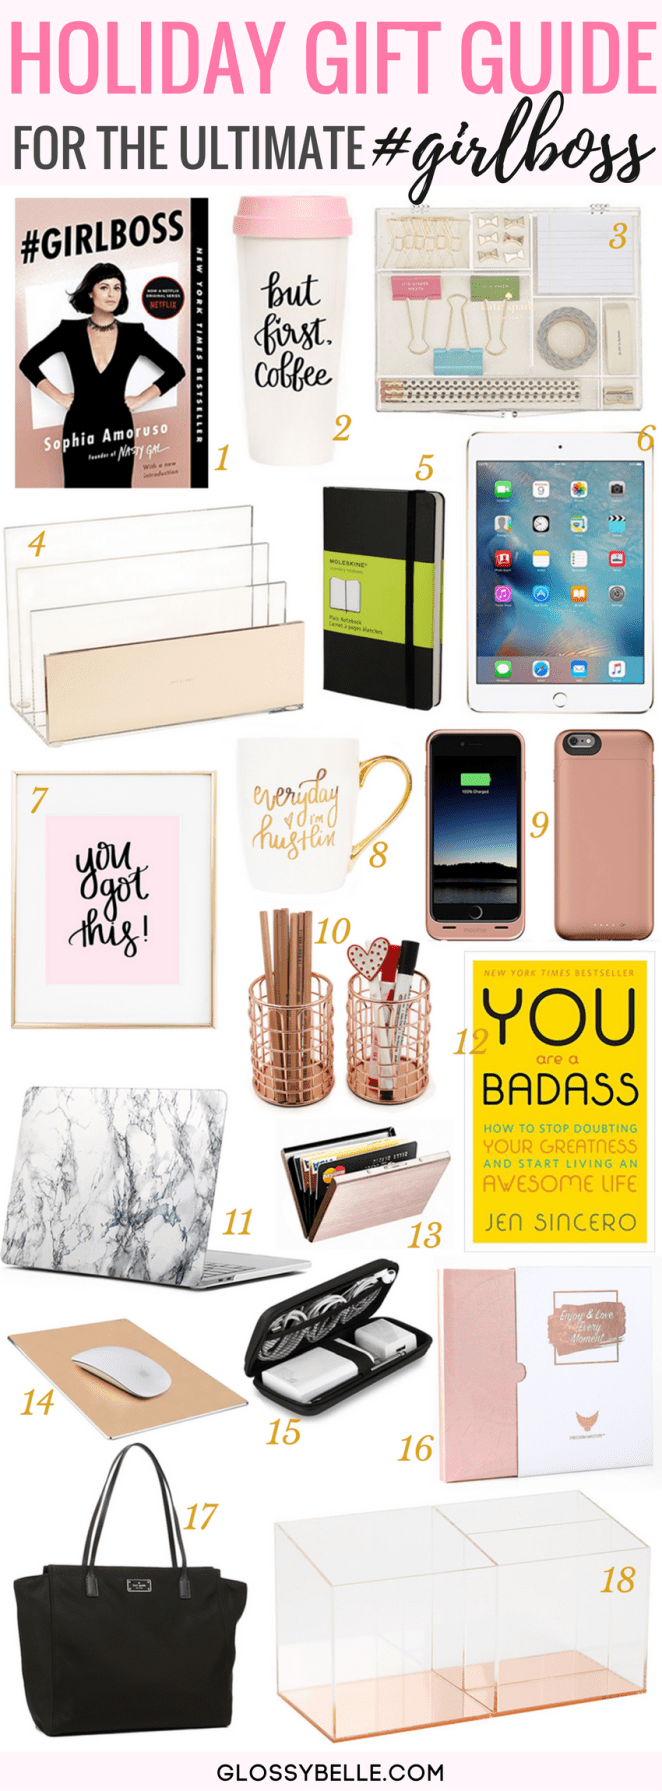 Holiday Gift Guide 2017: Gifts For The Ultimate Girl Boss // If you're having trouble finding the perfect gift for the ultimate girl boss in your life, follow my holiday gift guide with 18 must-have gifts for her.